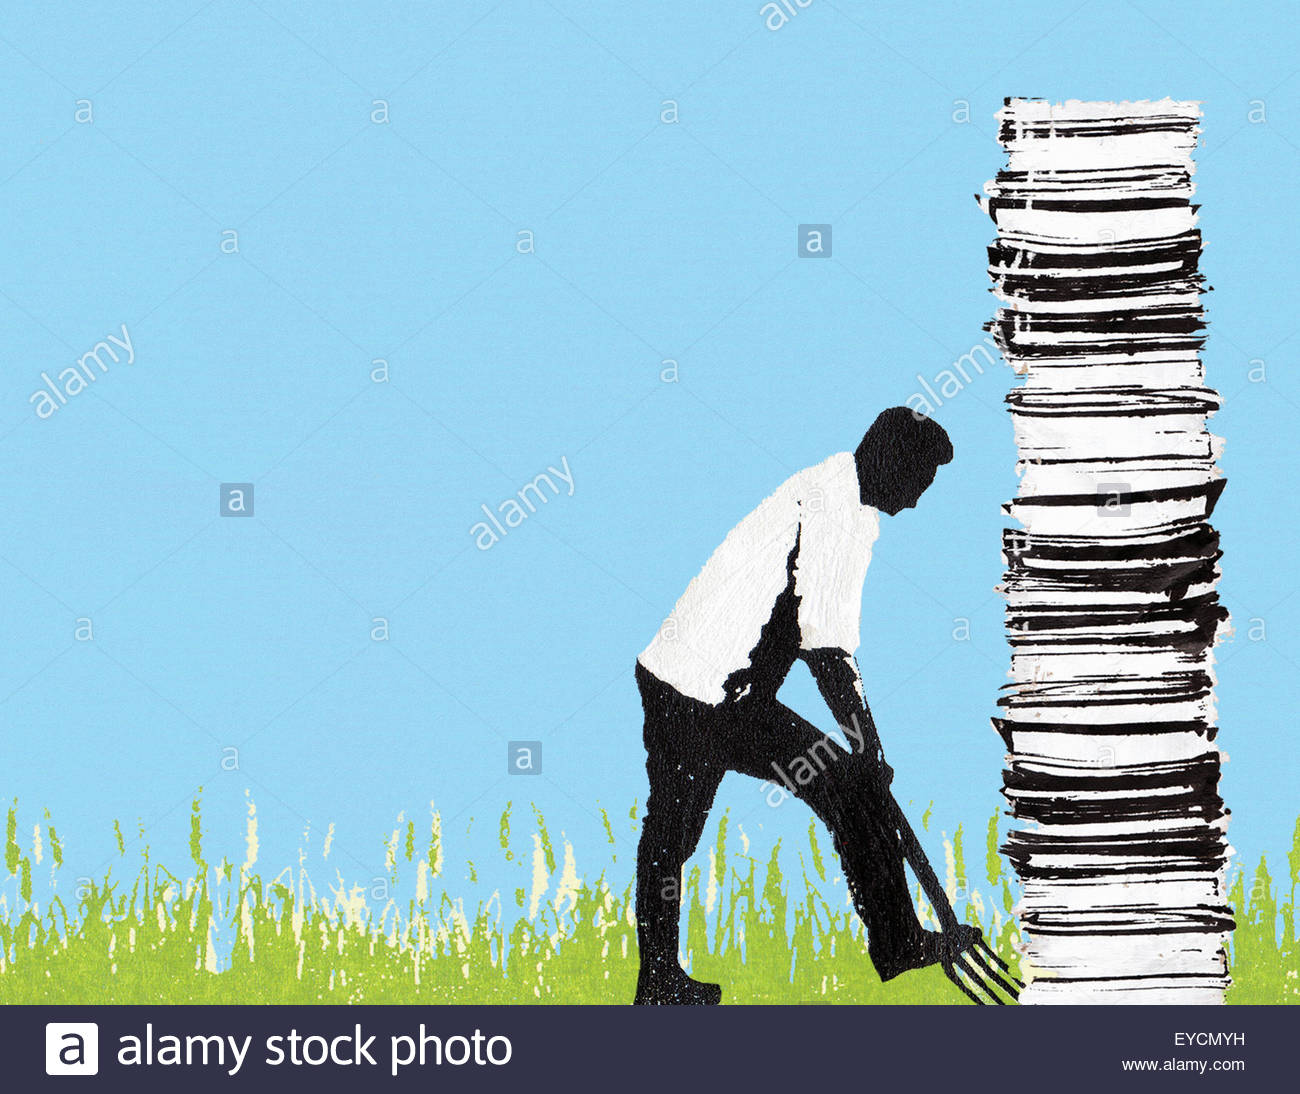 Man digging up tall pile of paperwork - Stock Image